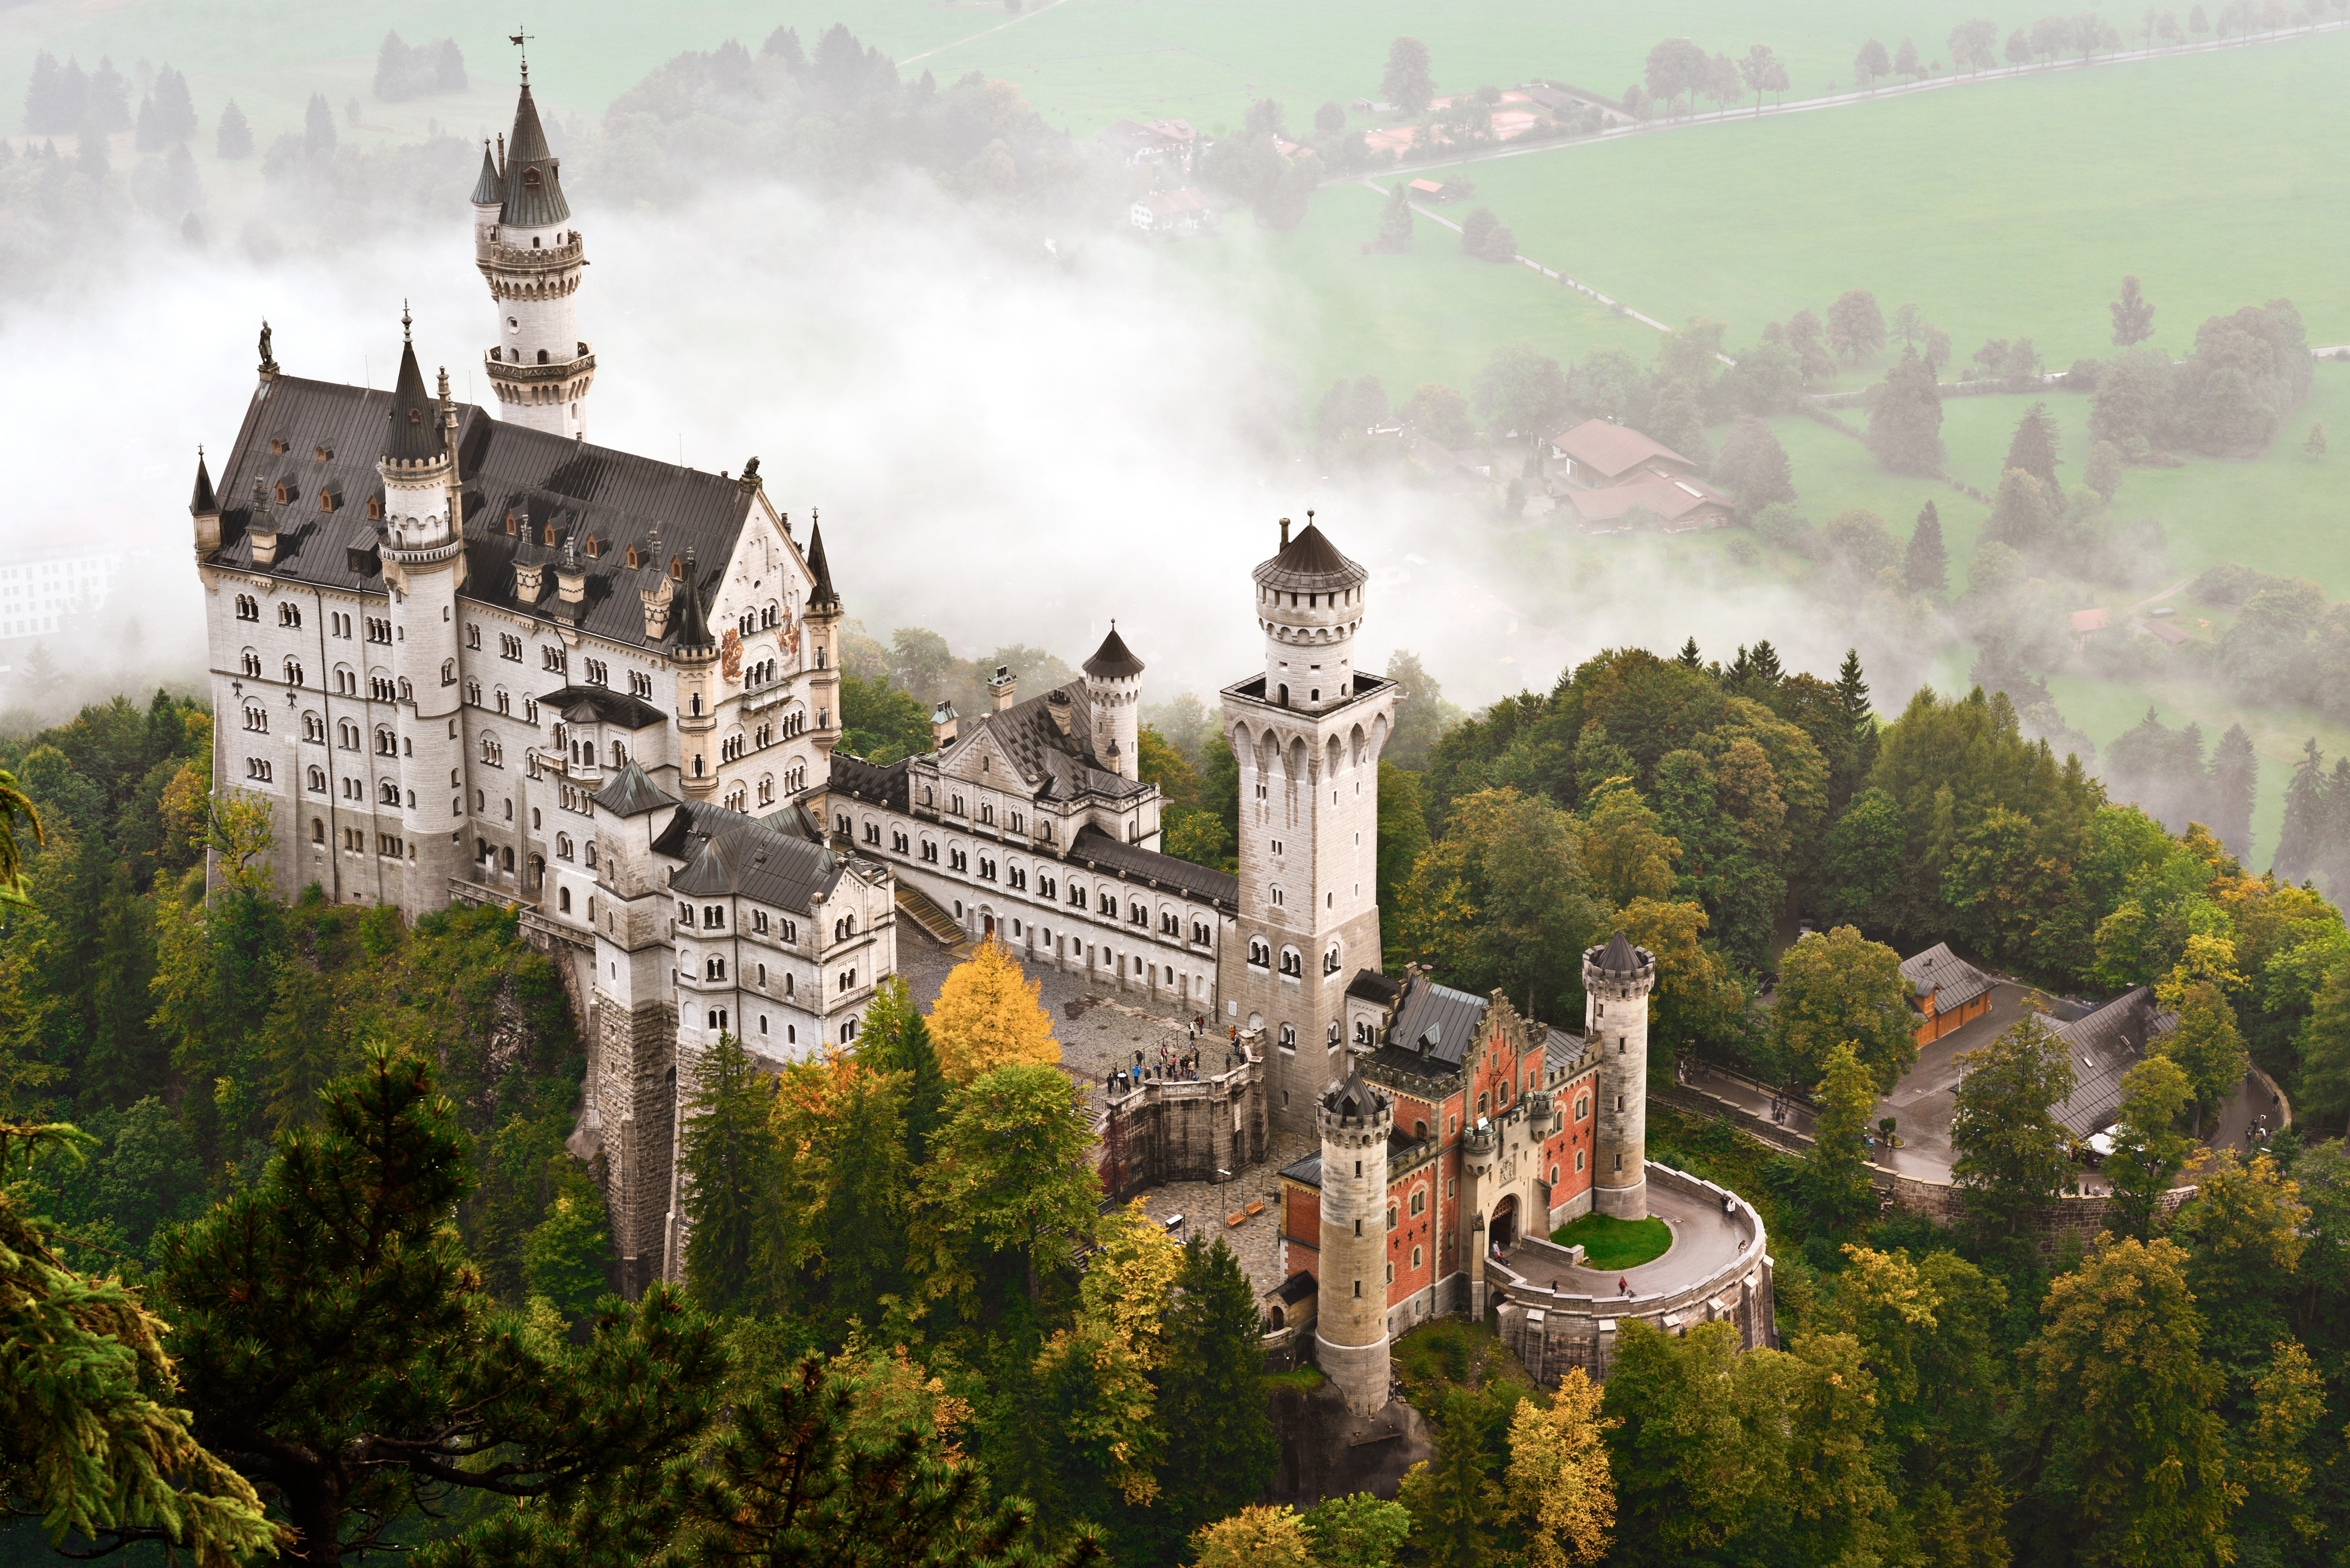 tourism in germany Explore the highlights of germany with a mix of private guided and group tours one of their travel experts will email you a custom quote and trip plan.